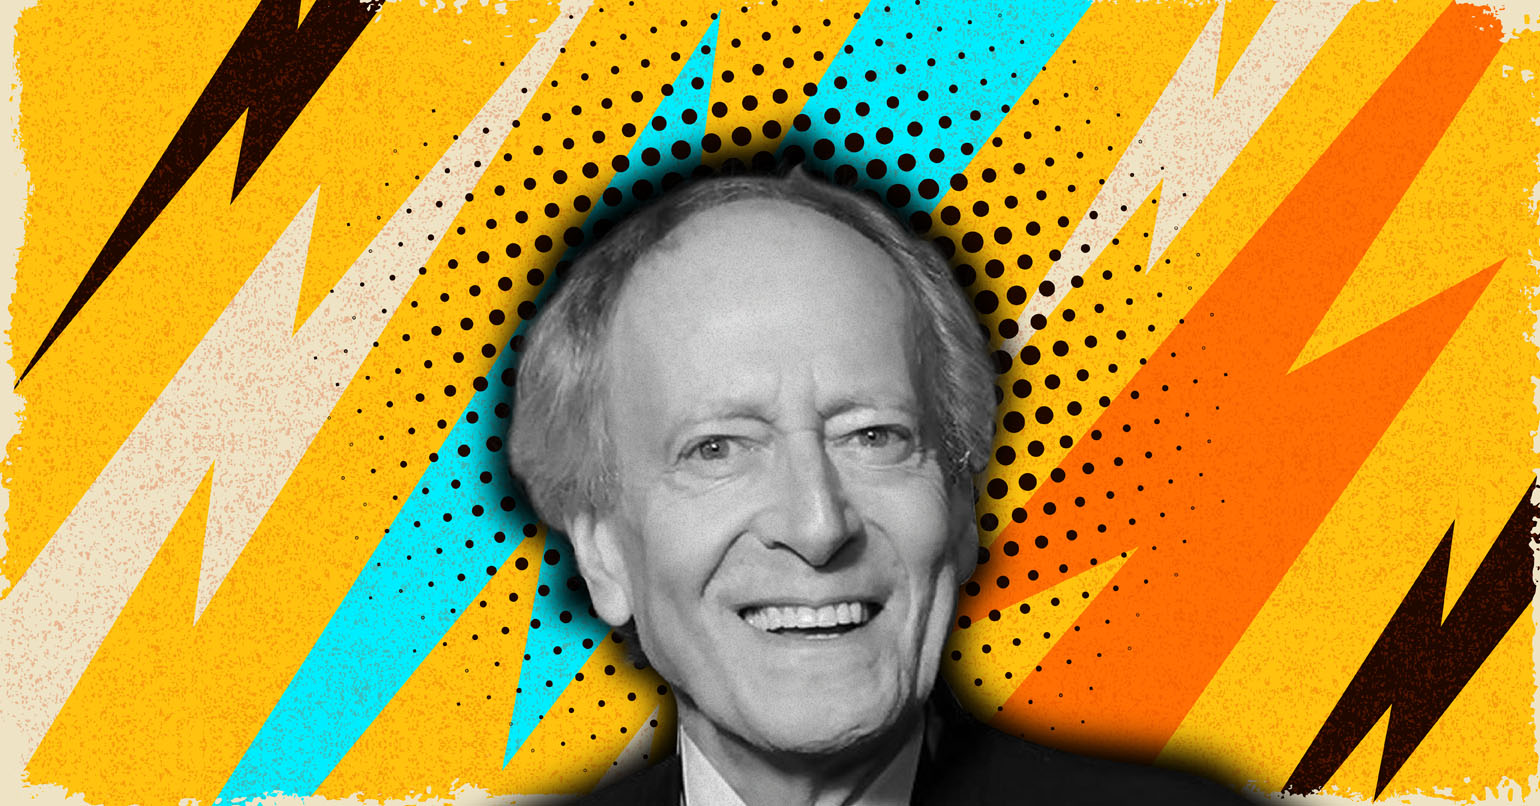 John Barry The music icon who made bond movies memorable.